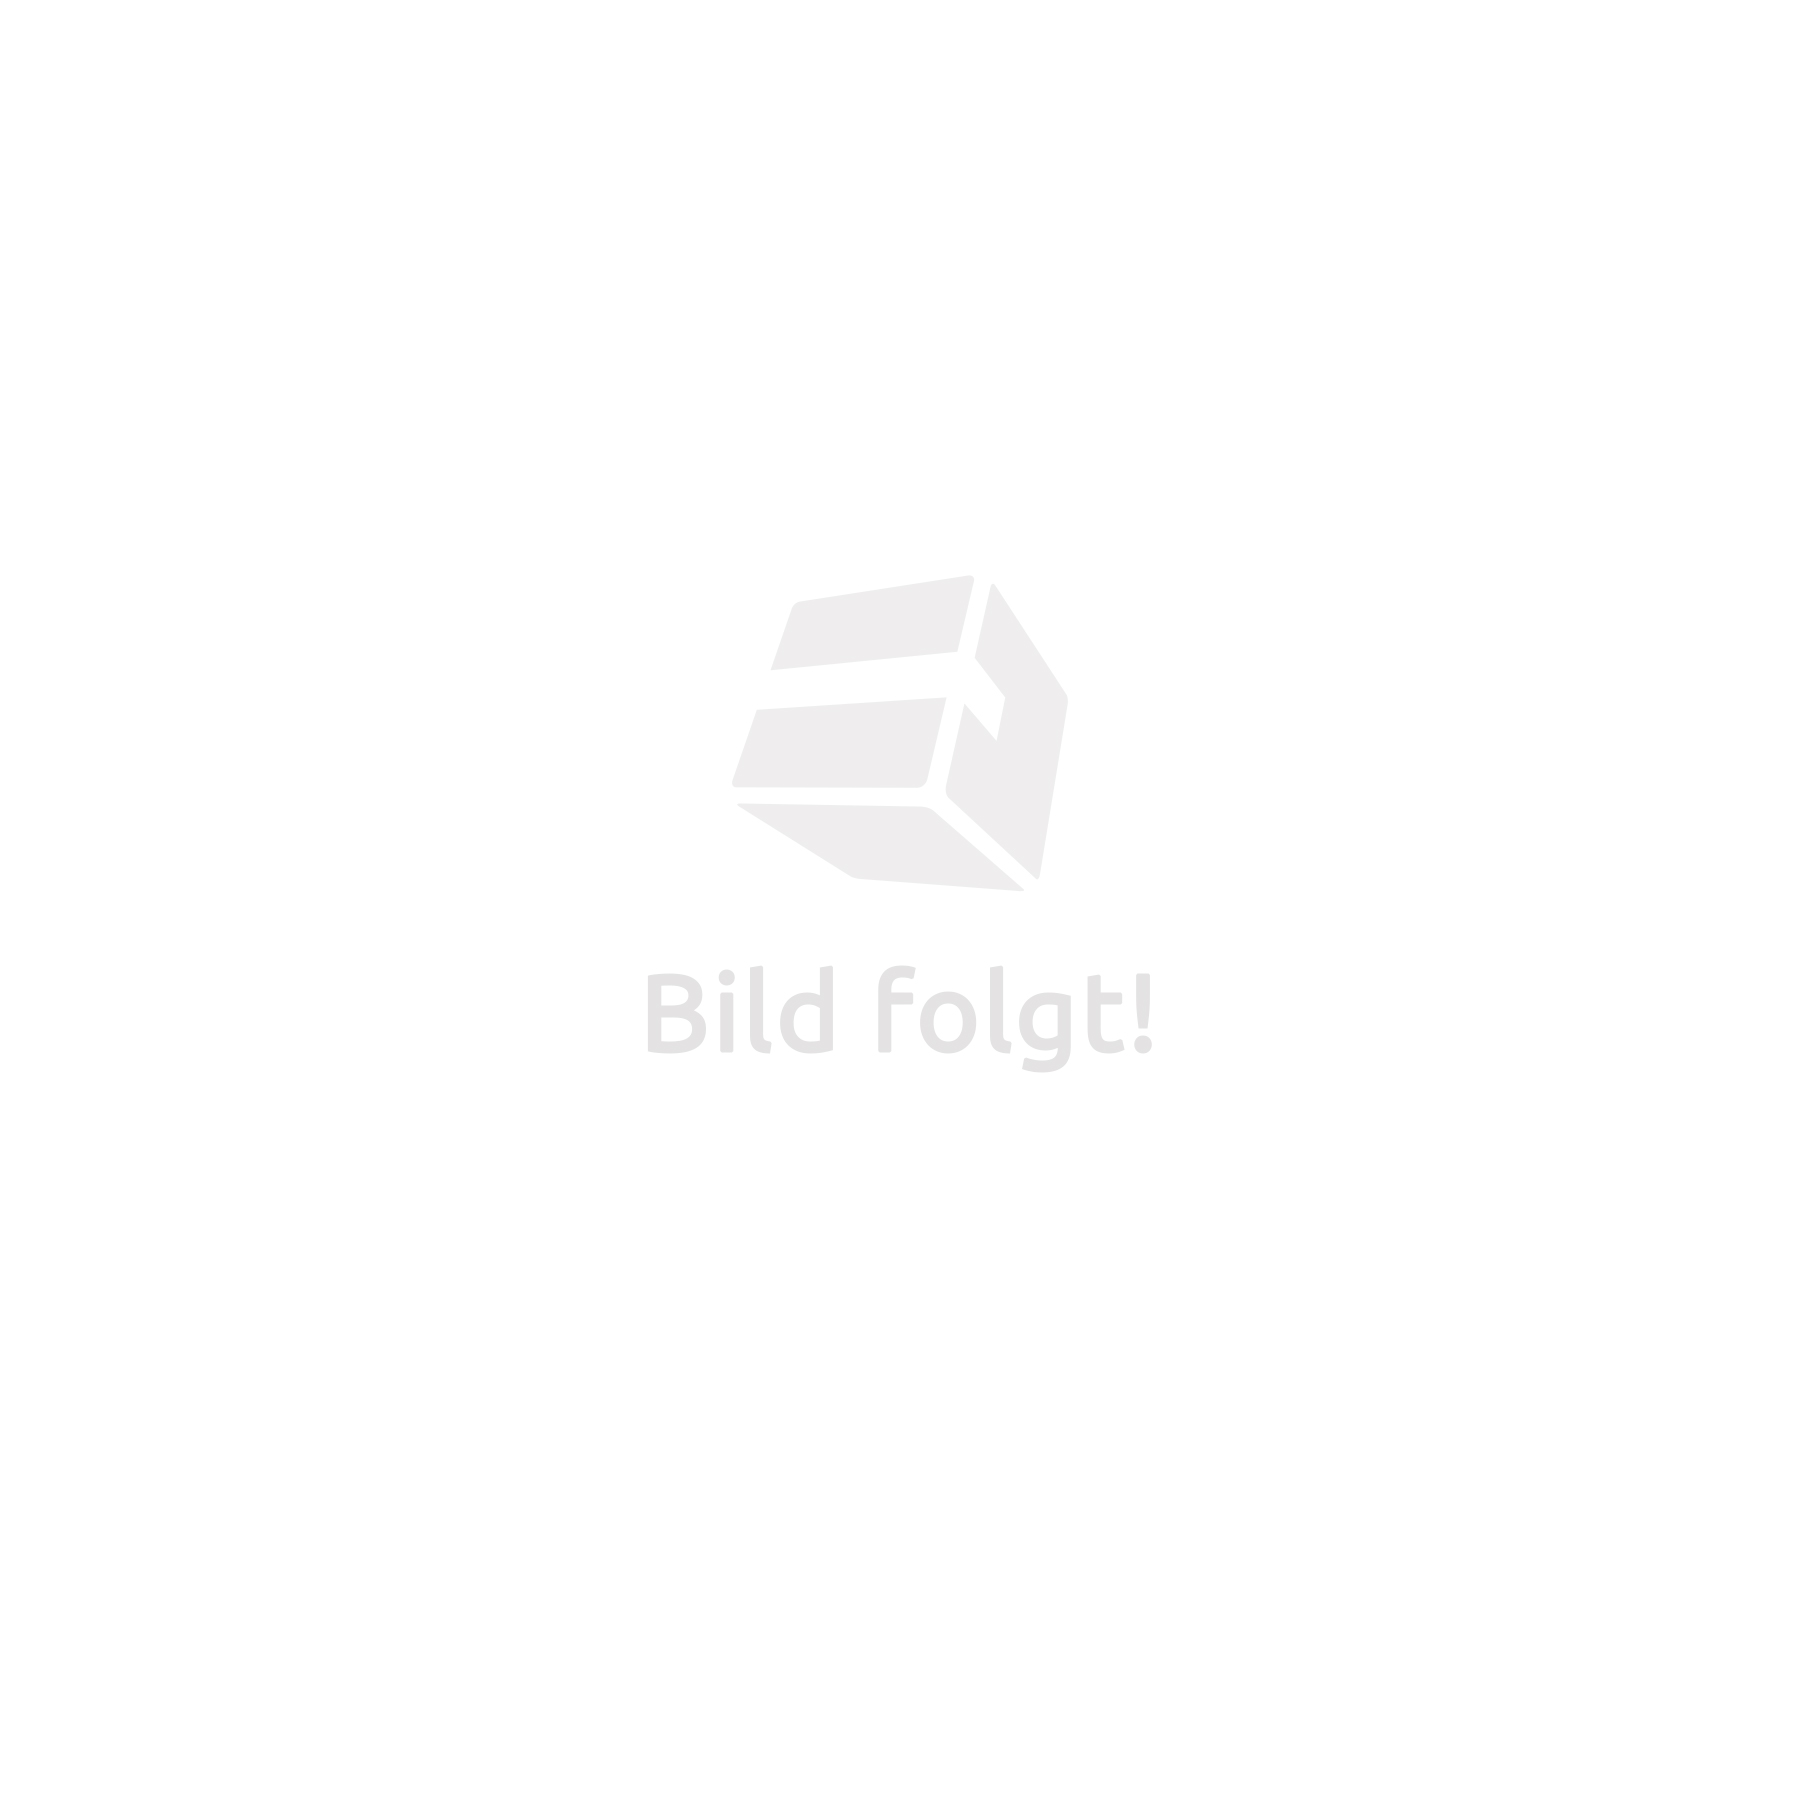 Tv Armchair Recliner Relax Swivel Chair Lounge With Foot